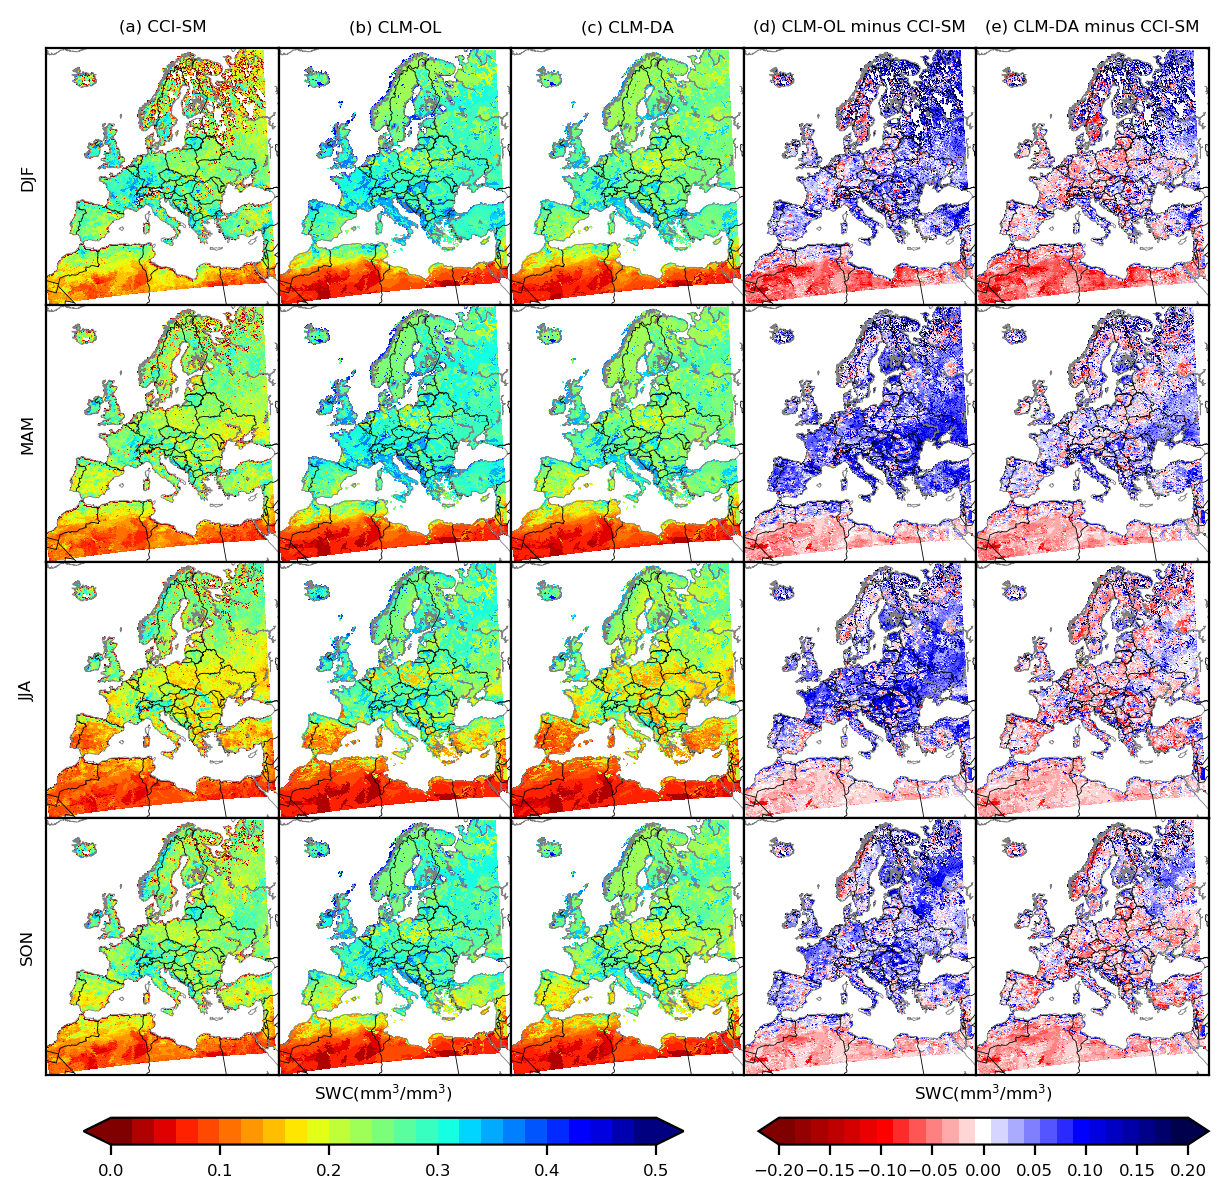 Figure 3: Improved soil moisture content over 2000-2006 time period using data assimilation framework with a land surface model (Naz et al., 2019).